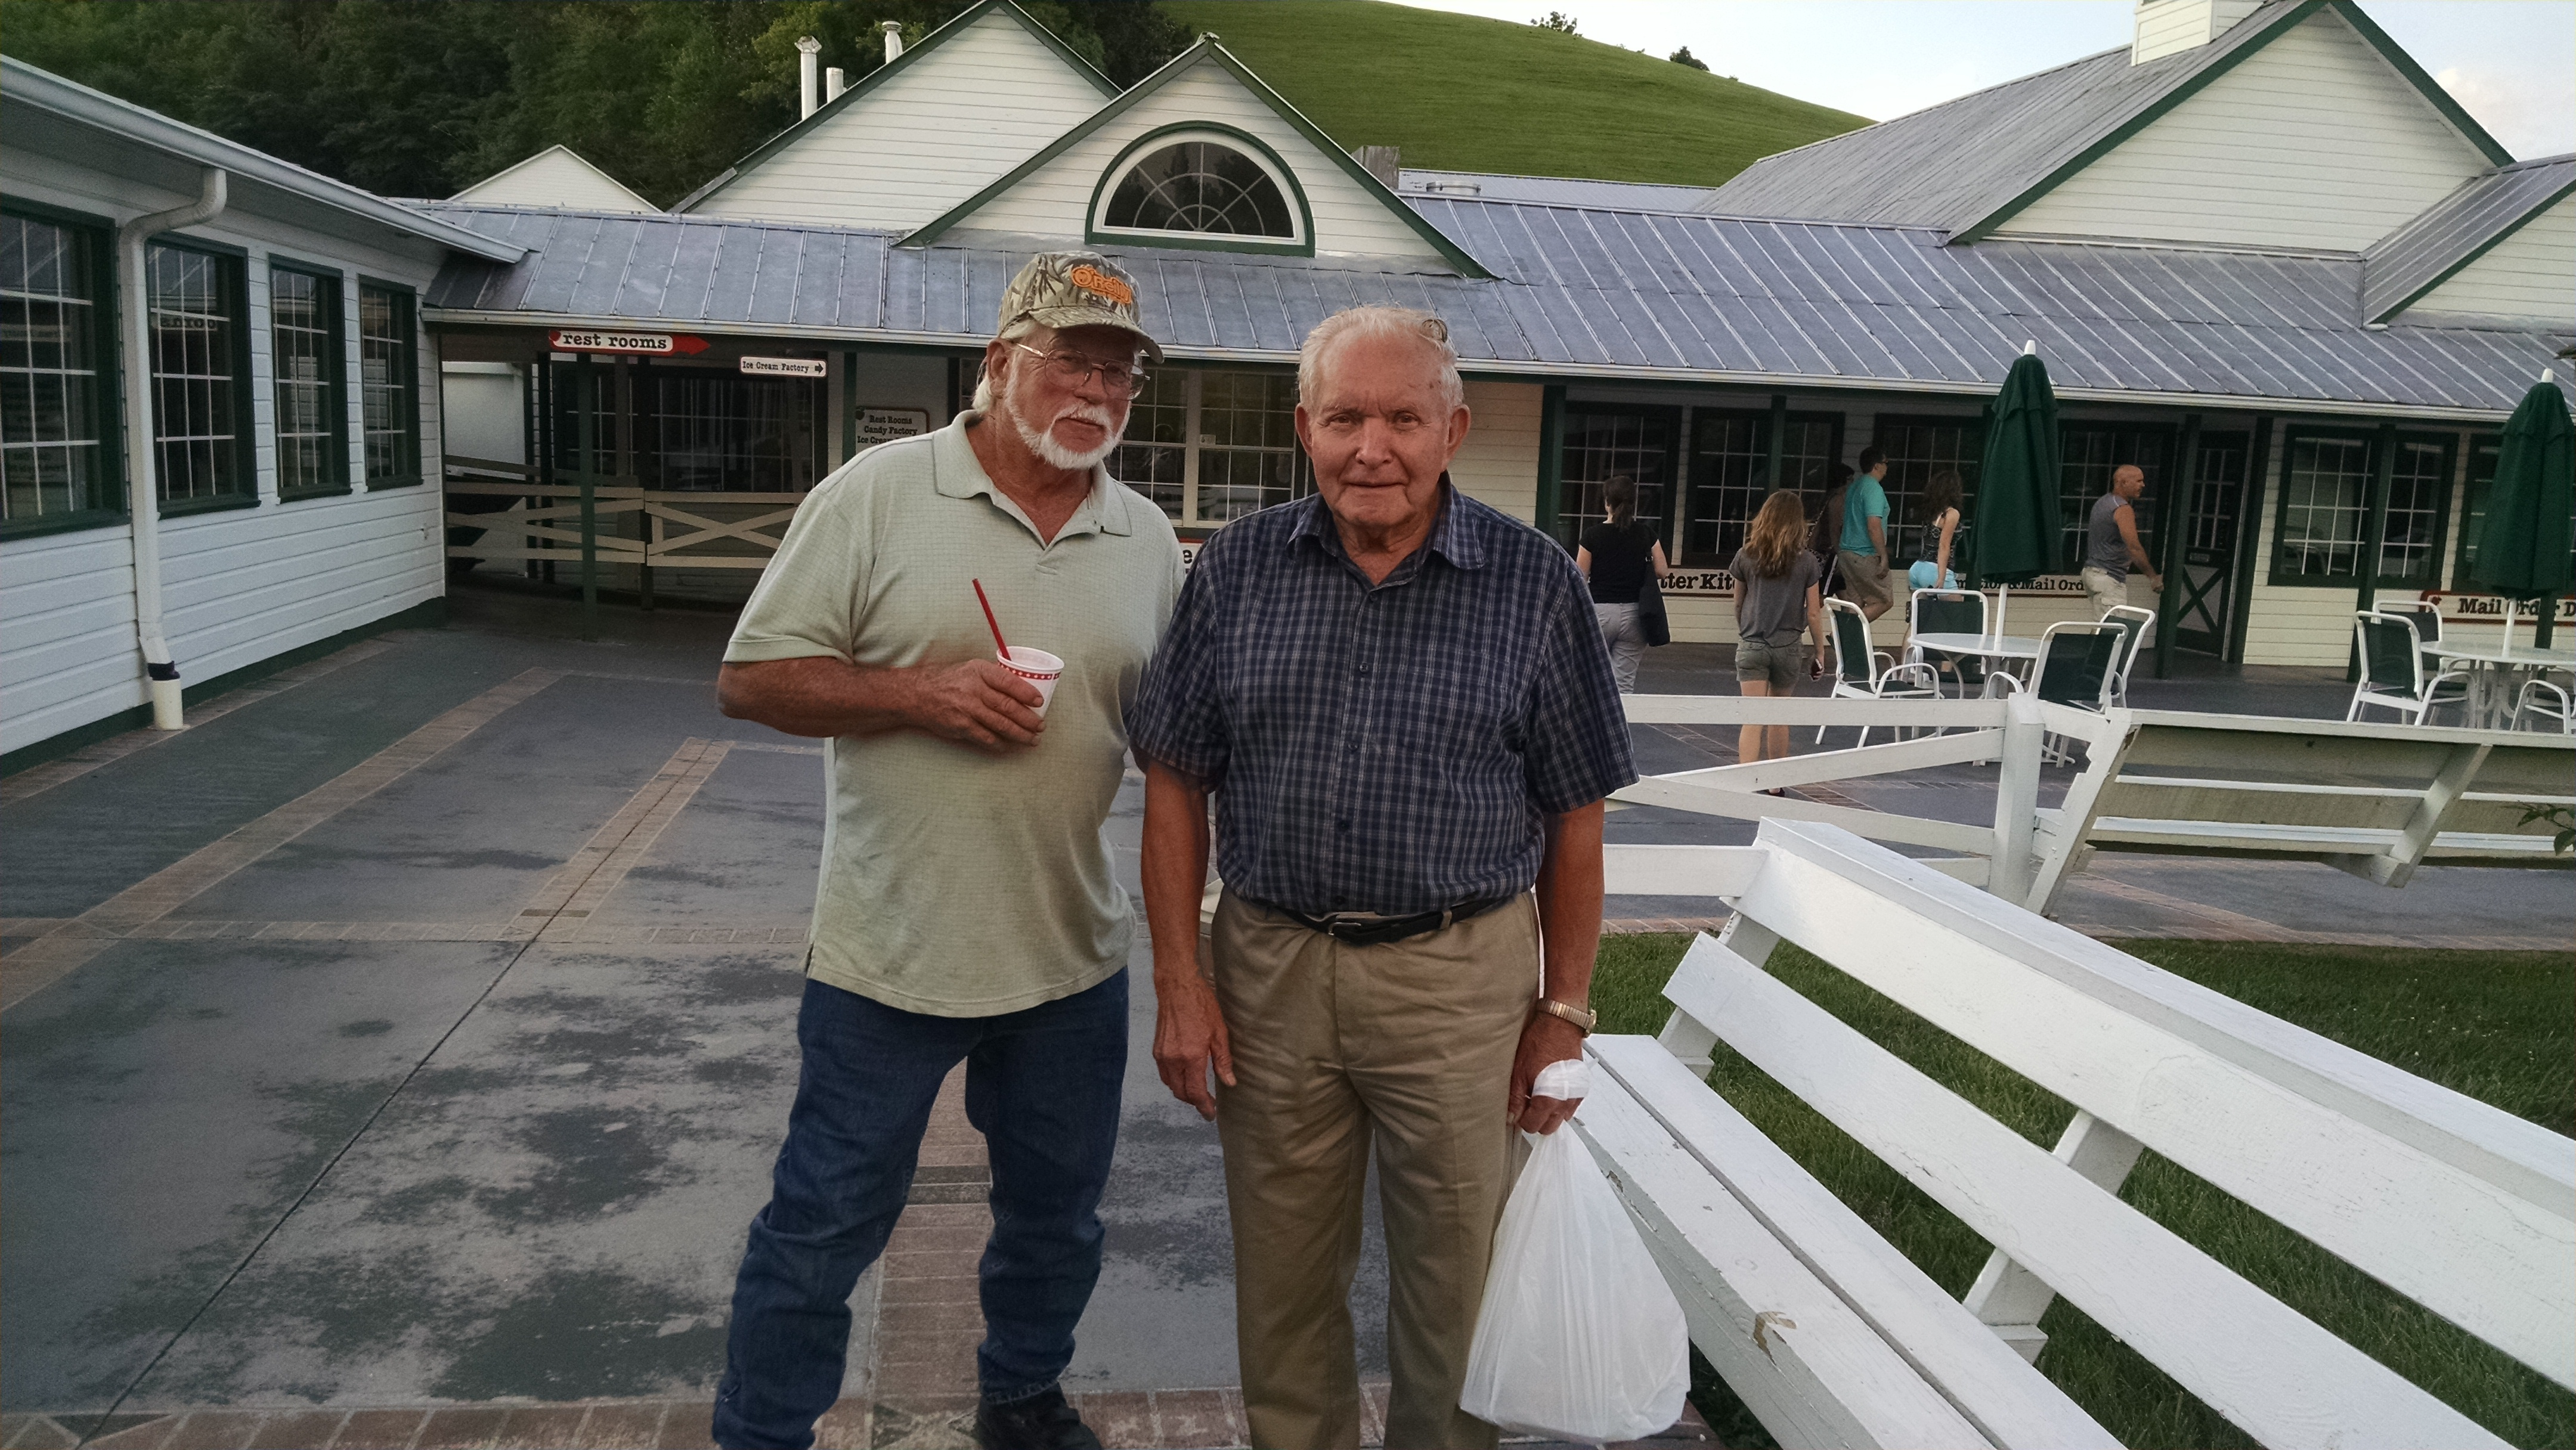 Buzz at the Apple Barn in Sevierville